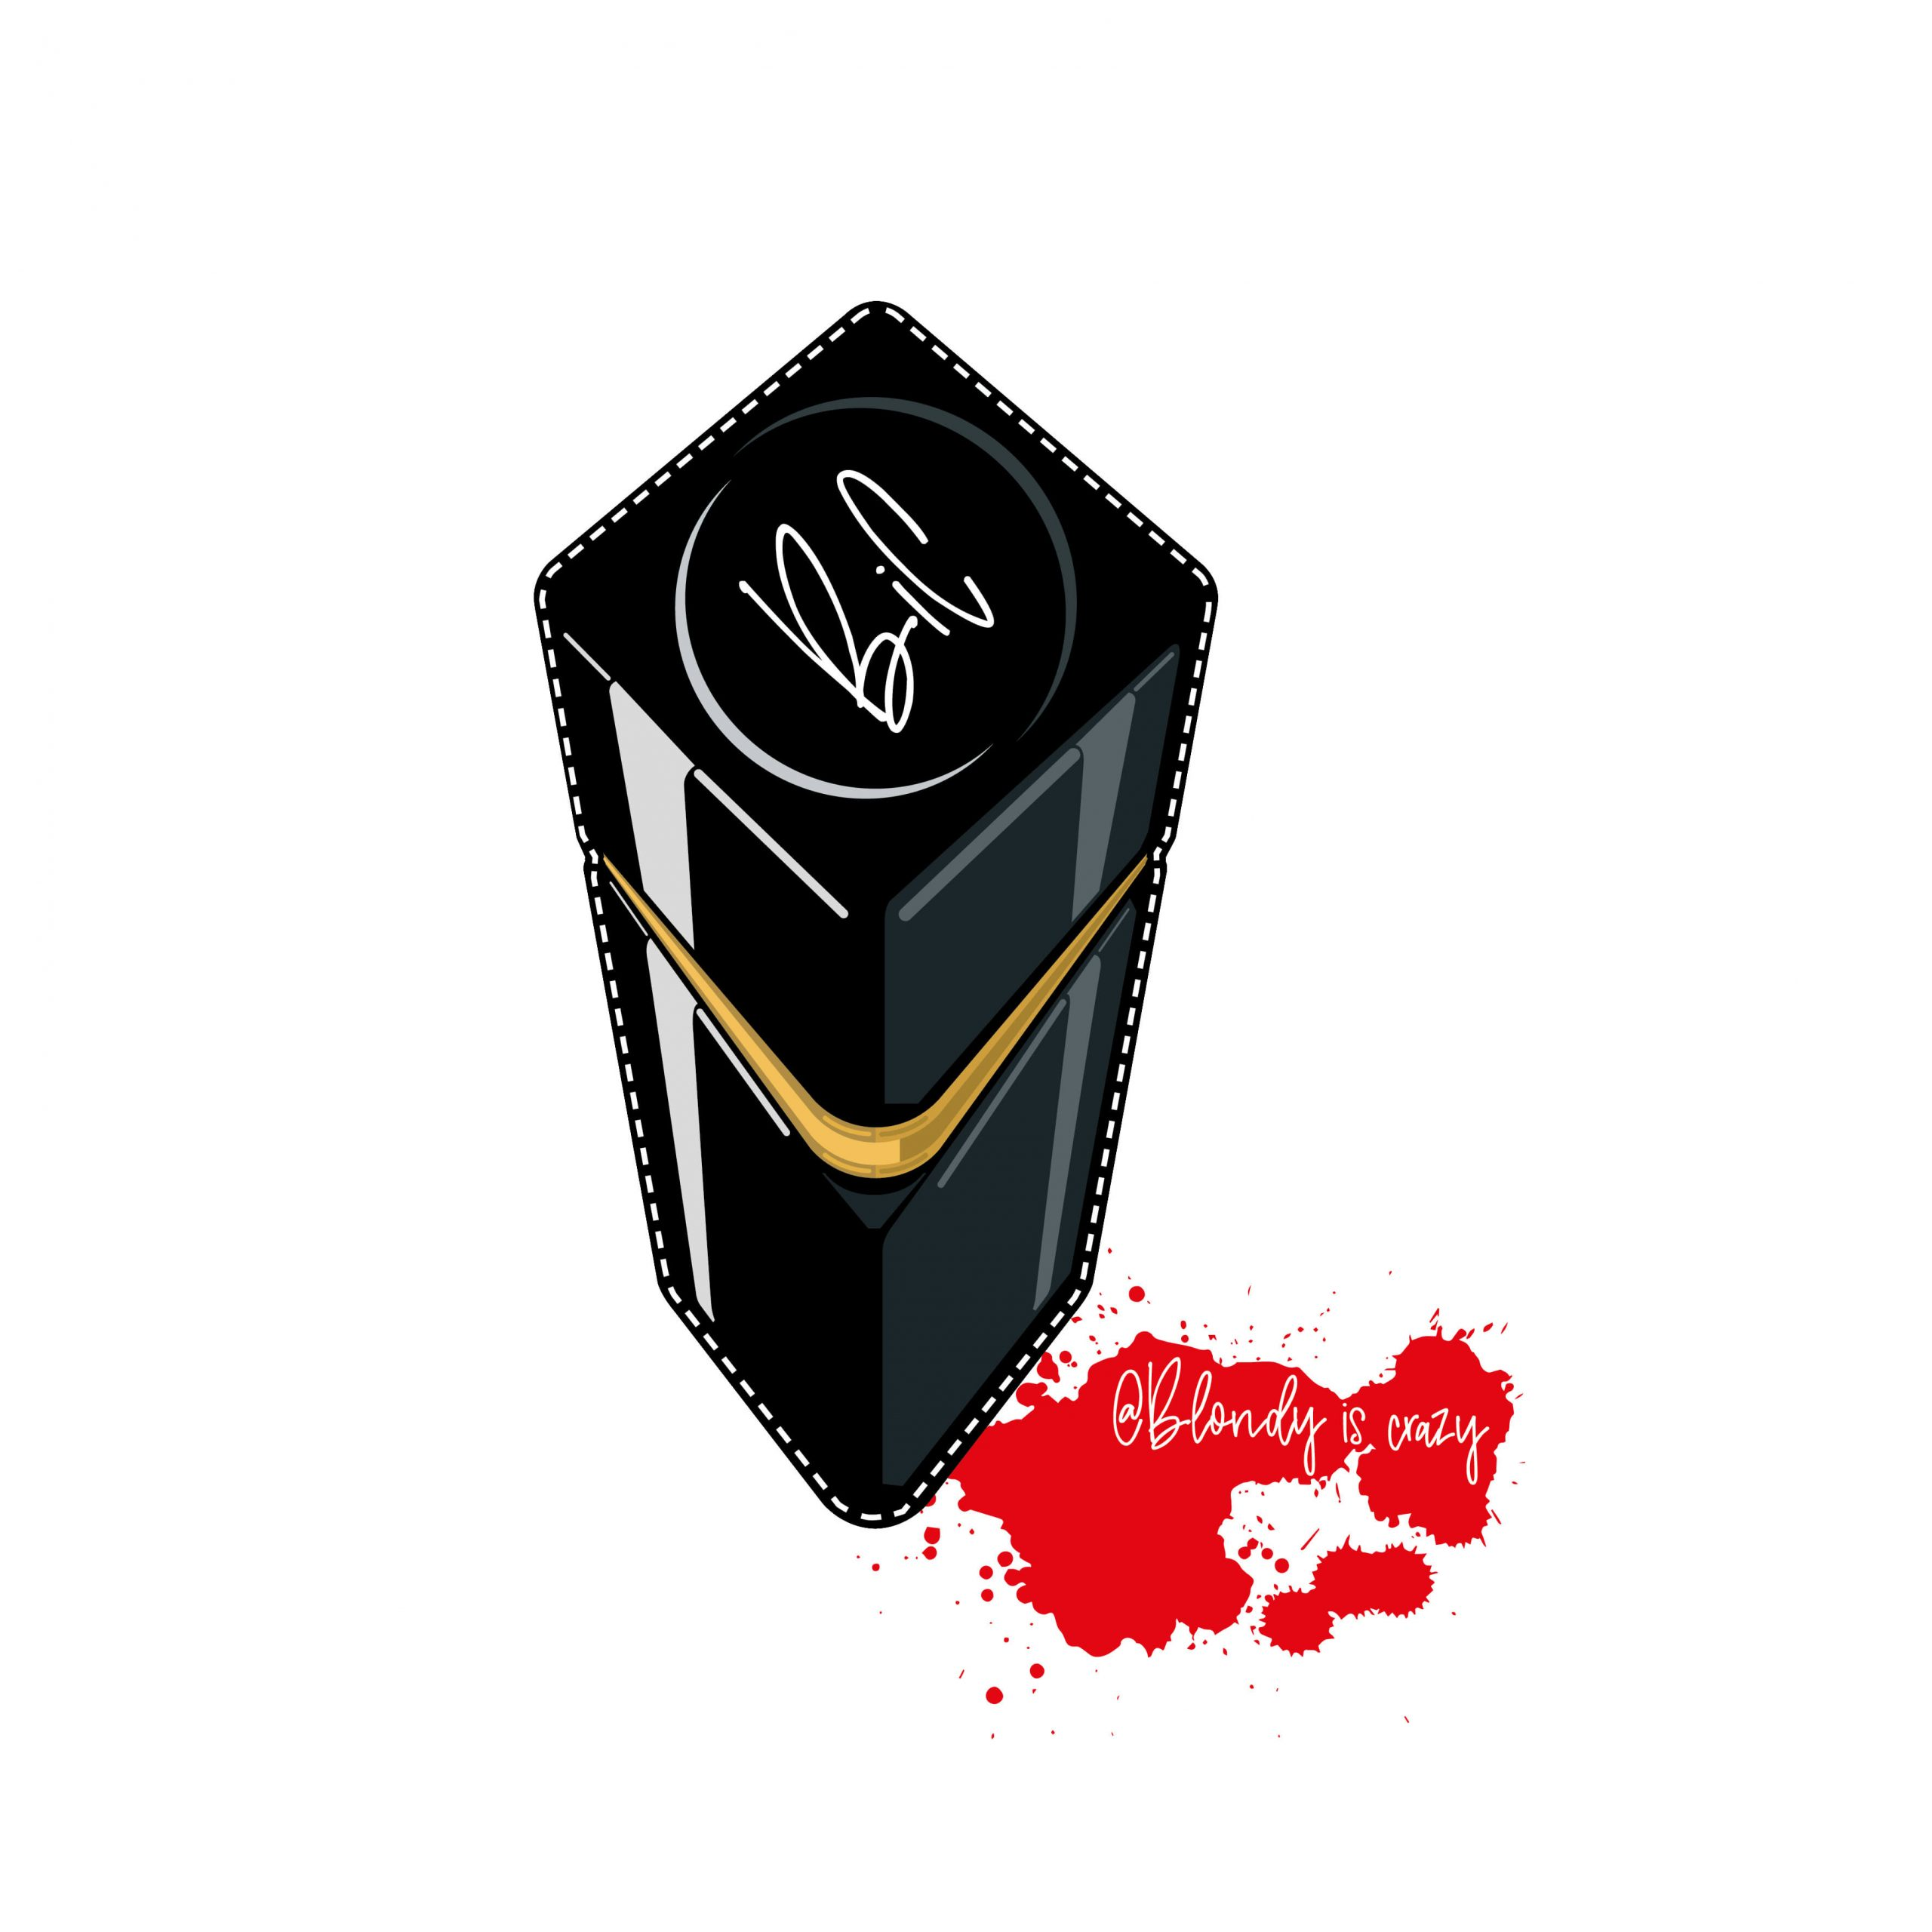 Closed Lipstick by Blondy is Crazy